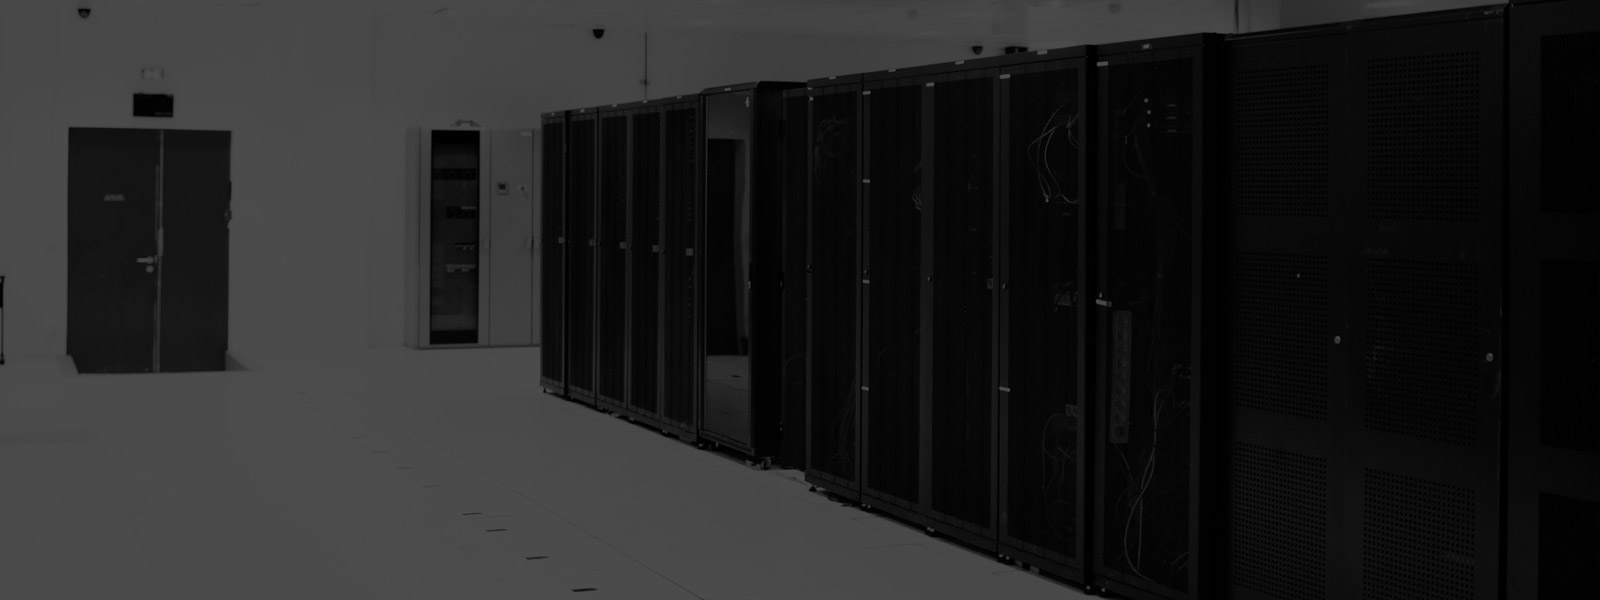 Netissime - Datacenter en France